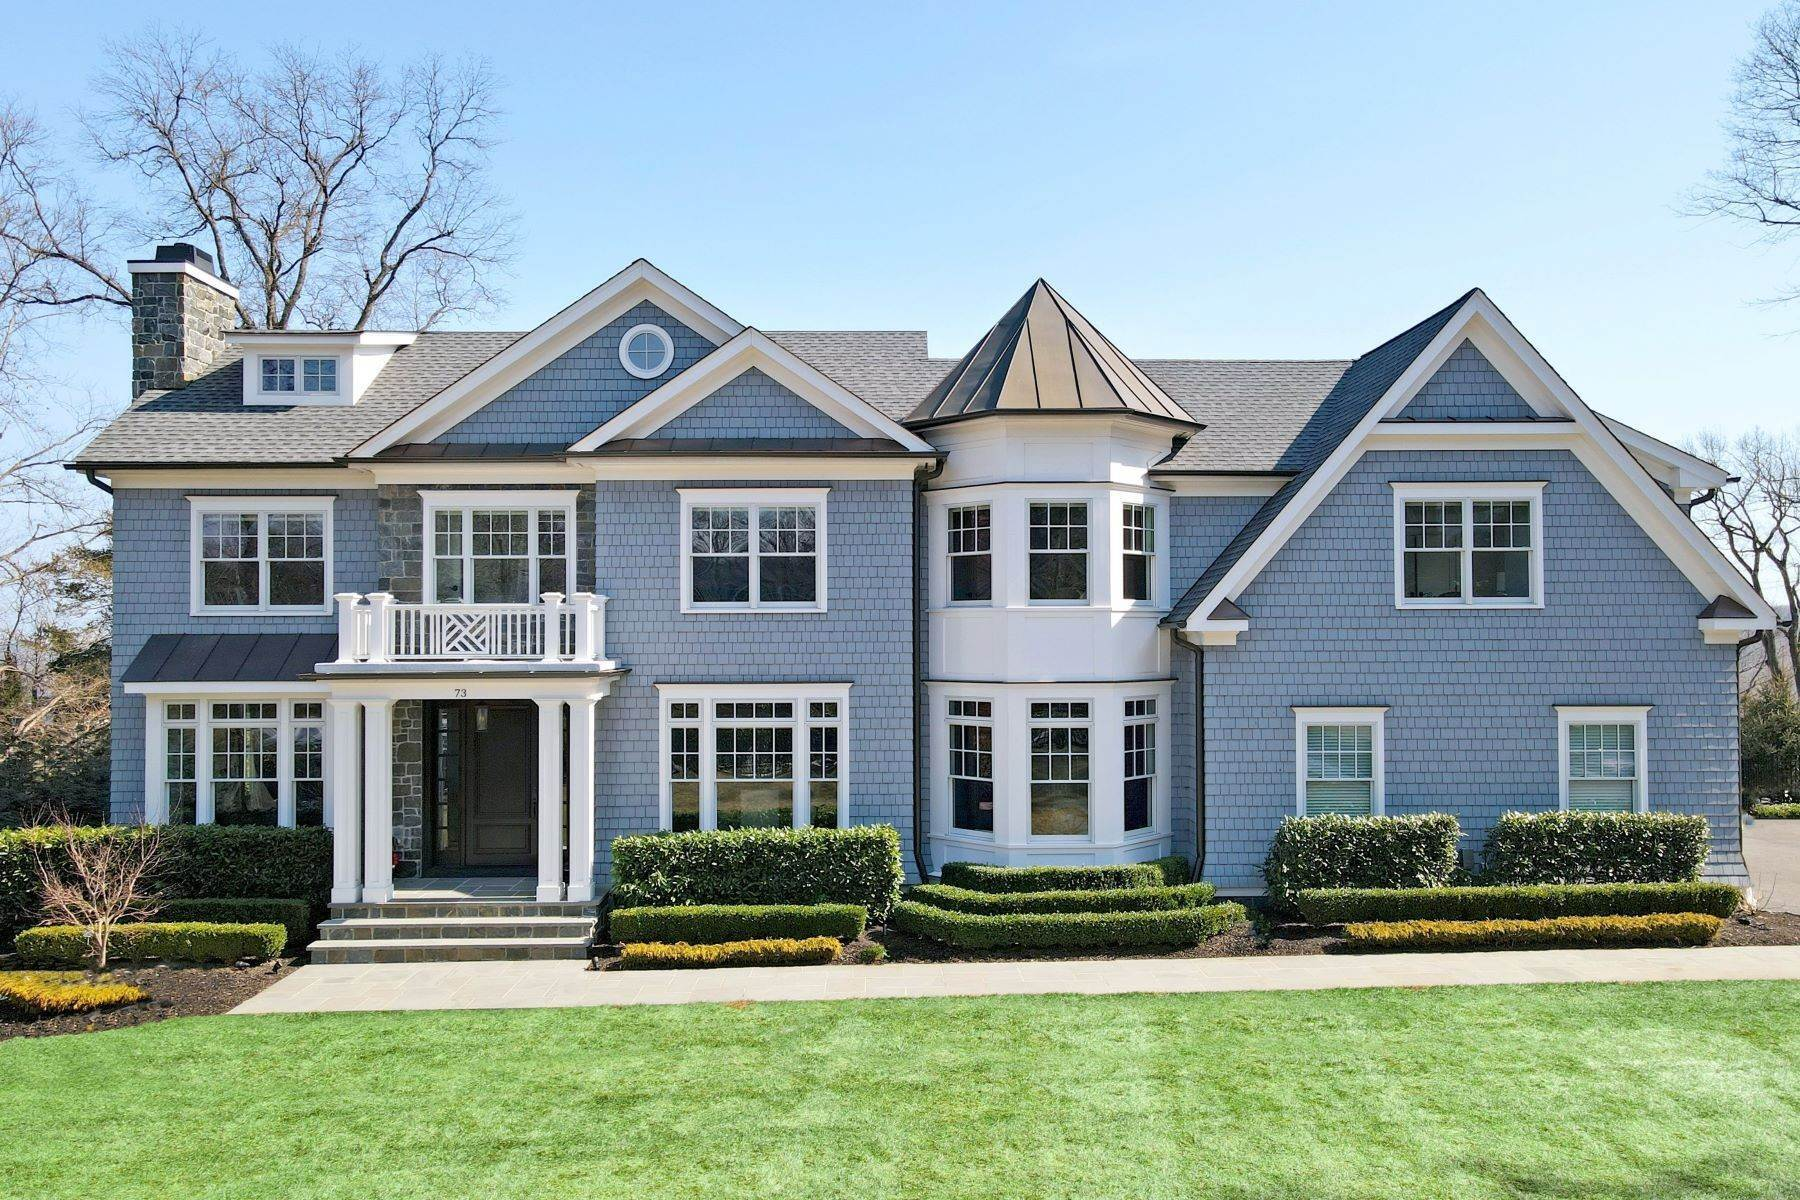 Single Family Homes for Sale at New Construction Masterpiece 73 Edgewood Road Summit, New Jersey 07901 United States